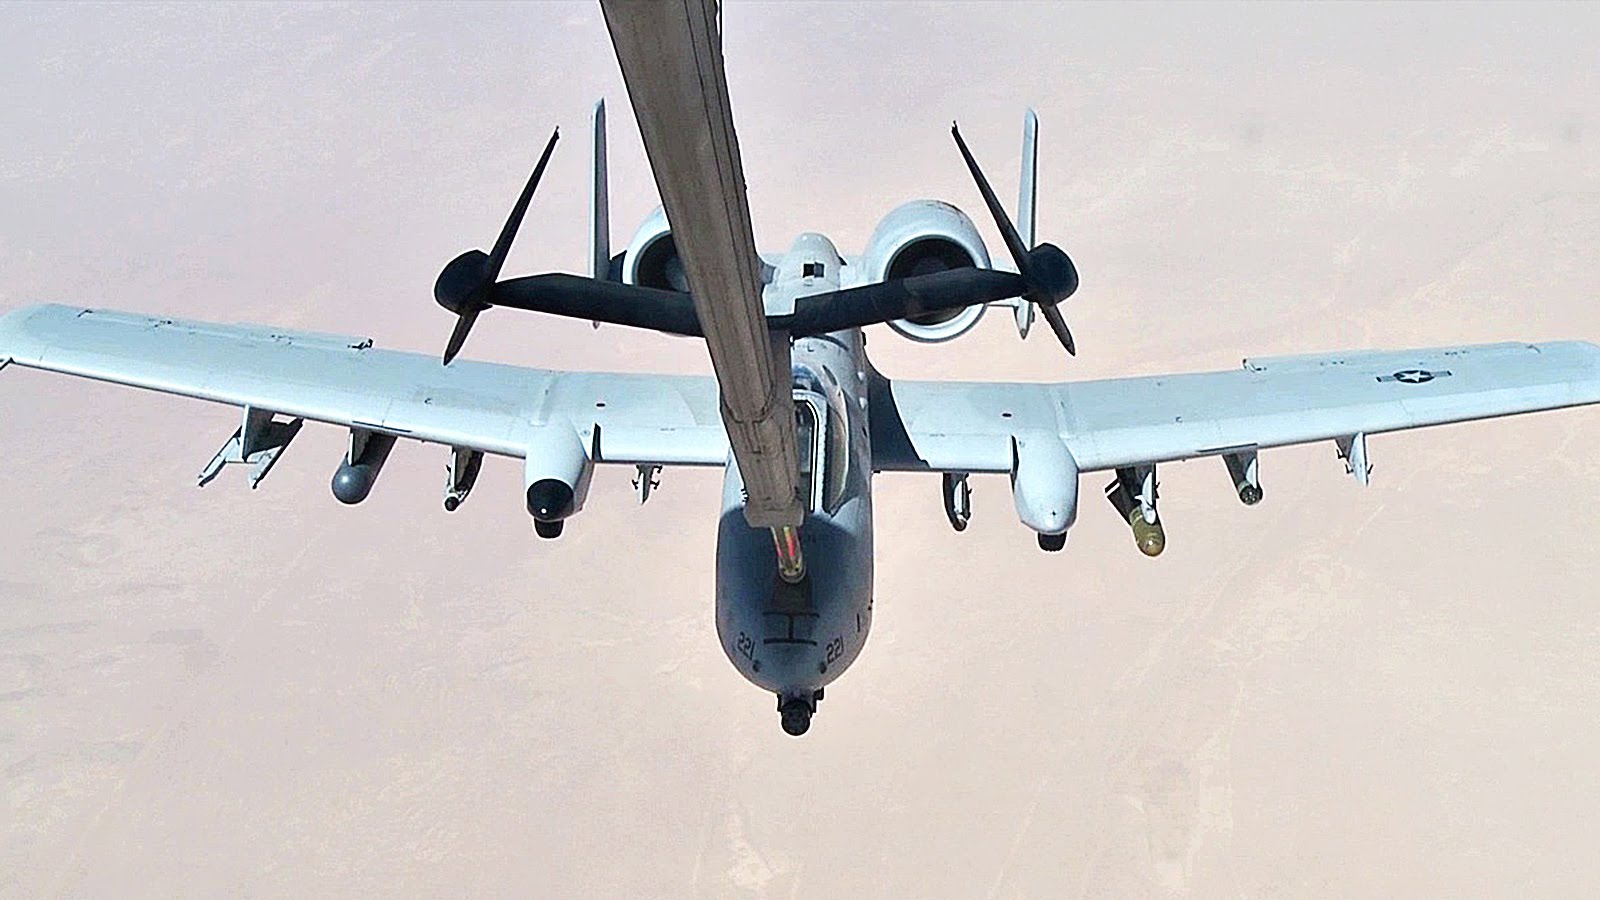 KC-10 Tanker Air Refueling A-10 Warthogs Over Southwest Asia